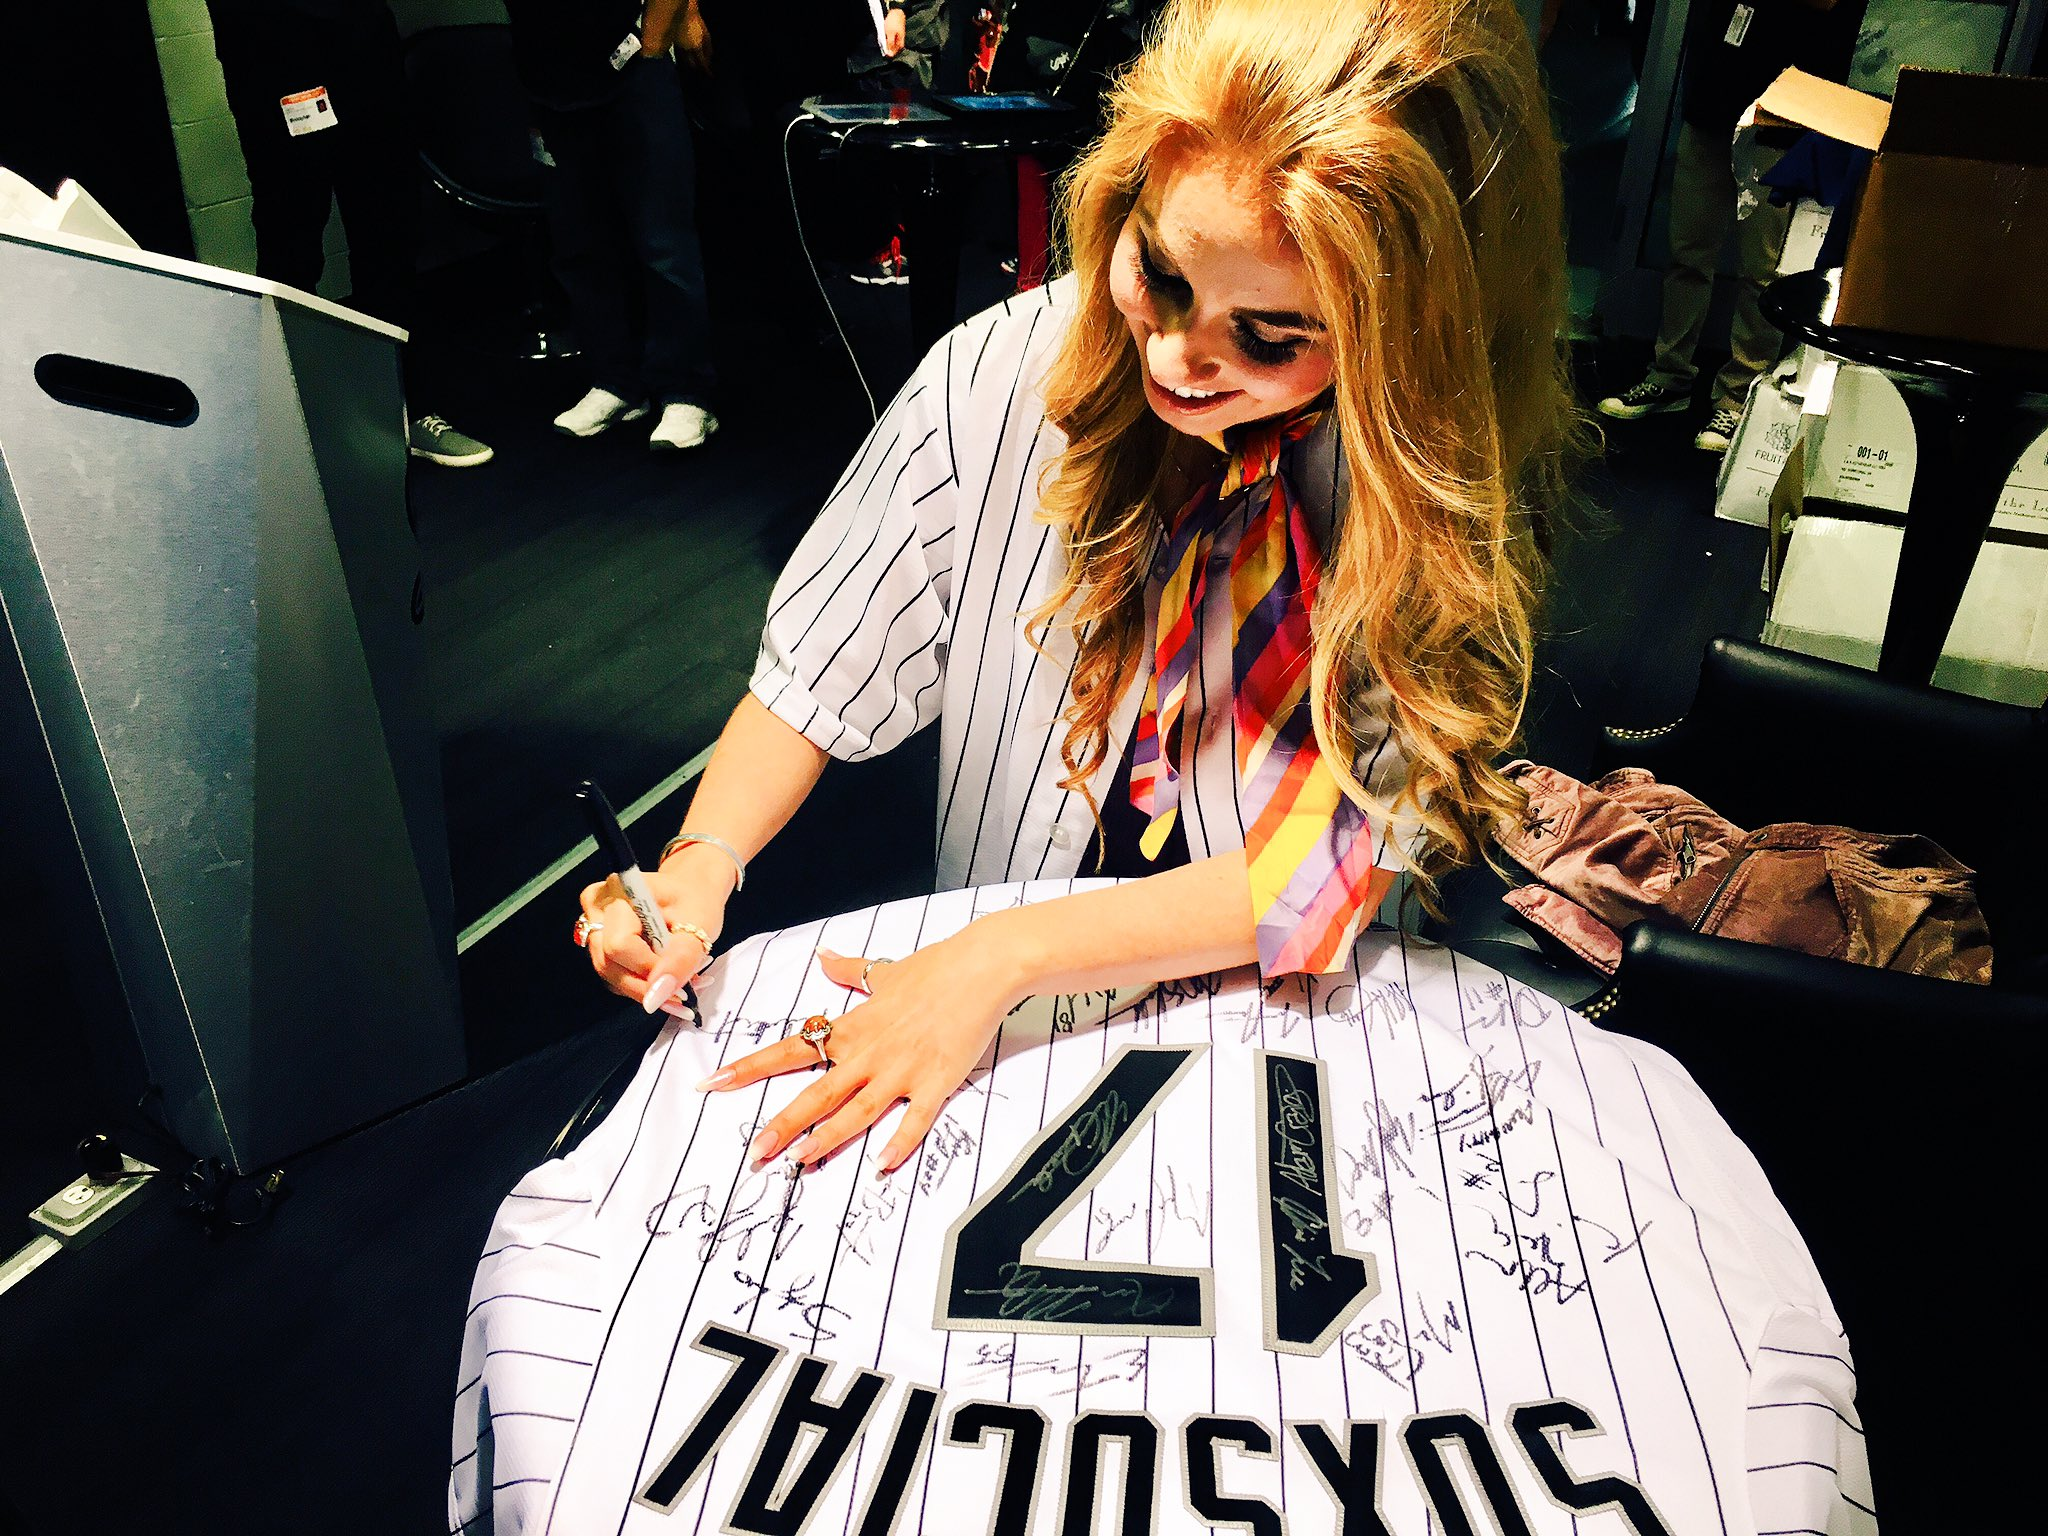 ICYMI - @HaleyReinhart stopped by our #SoxSocial Lounge to sign our jersey! https://t.co/exFVhCLOGz